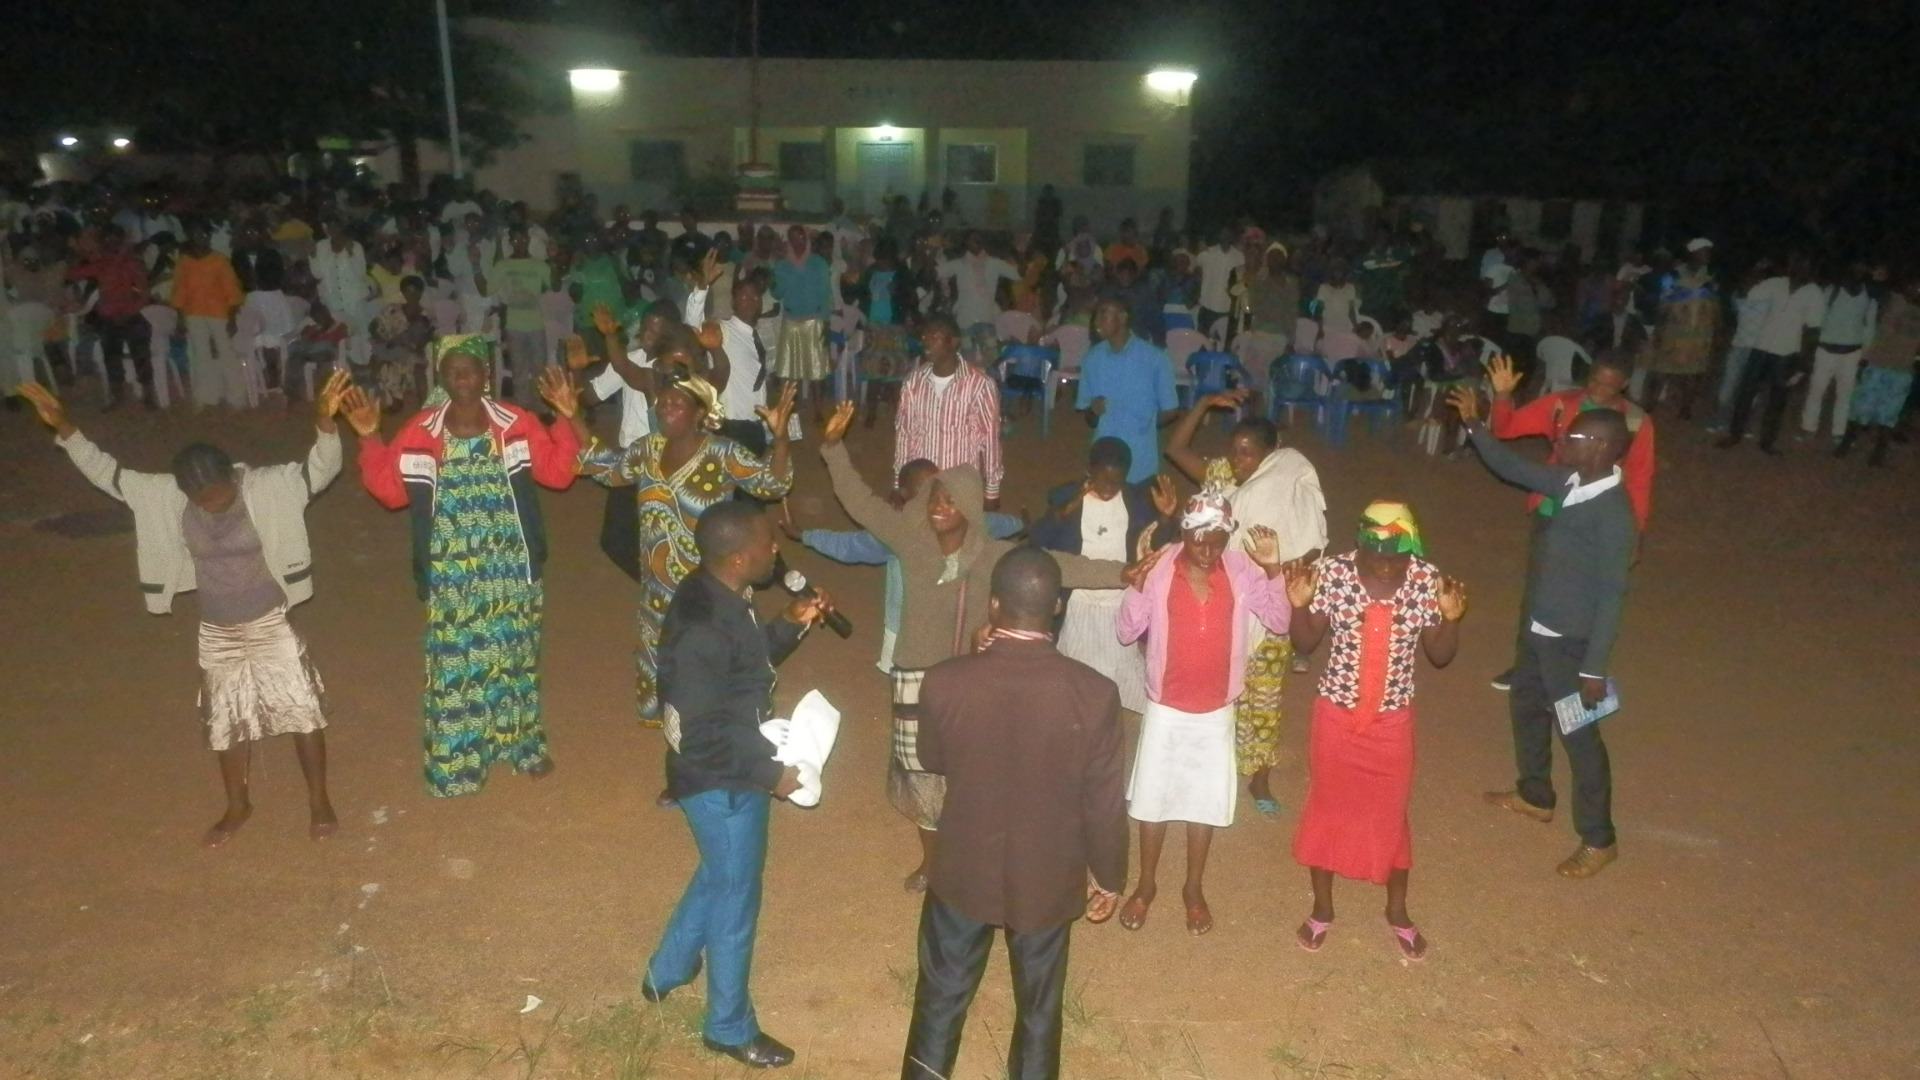 C.Y.J brethren ministering during the crusade